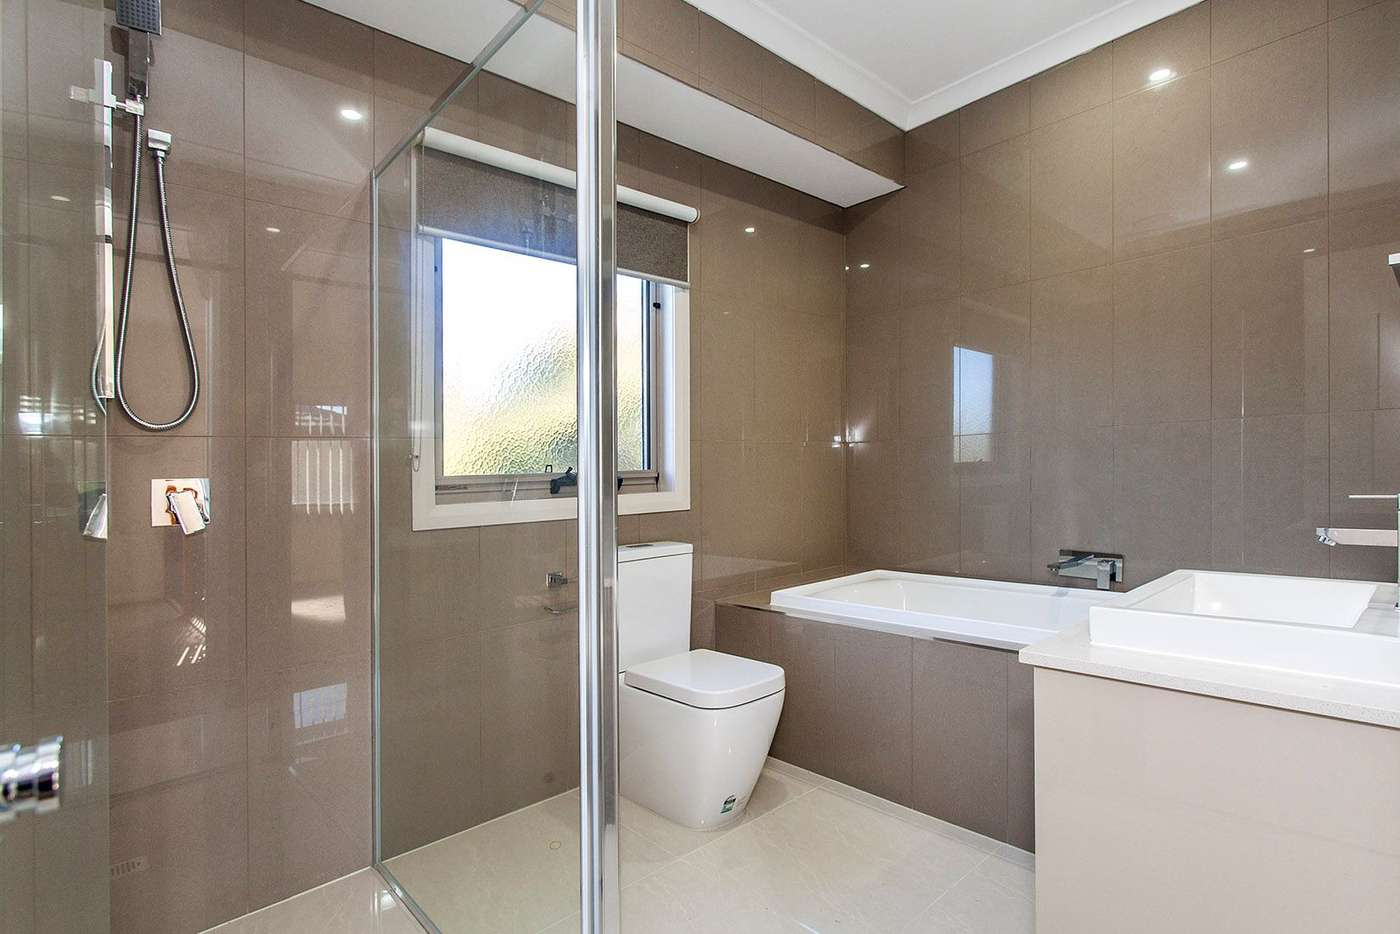 Sixth view of Homely townhouse listing, 1a Haldane Court, Doncaster East VIC 3109